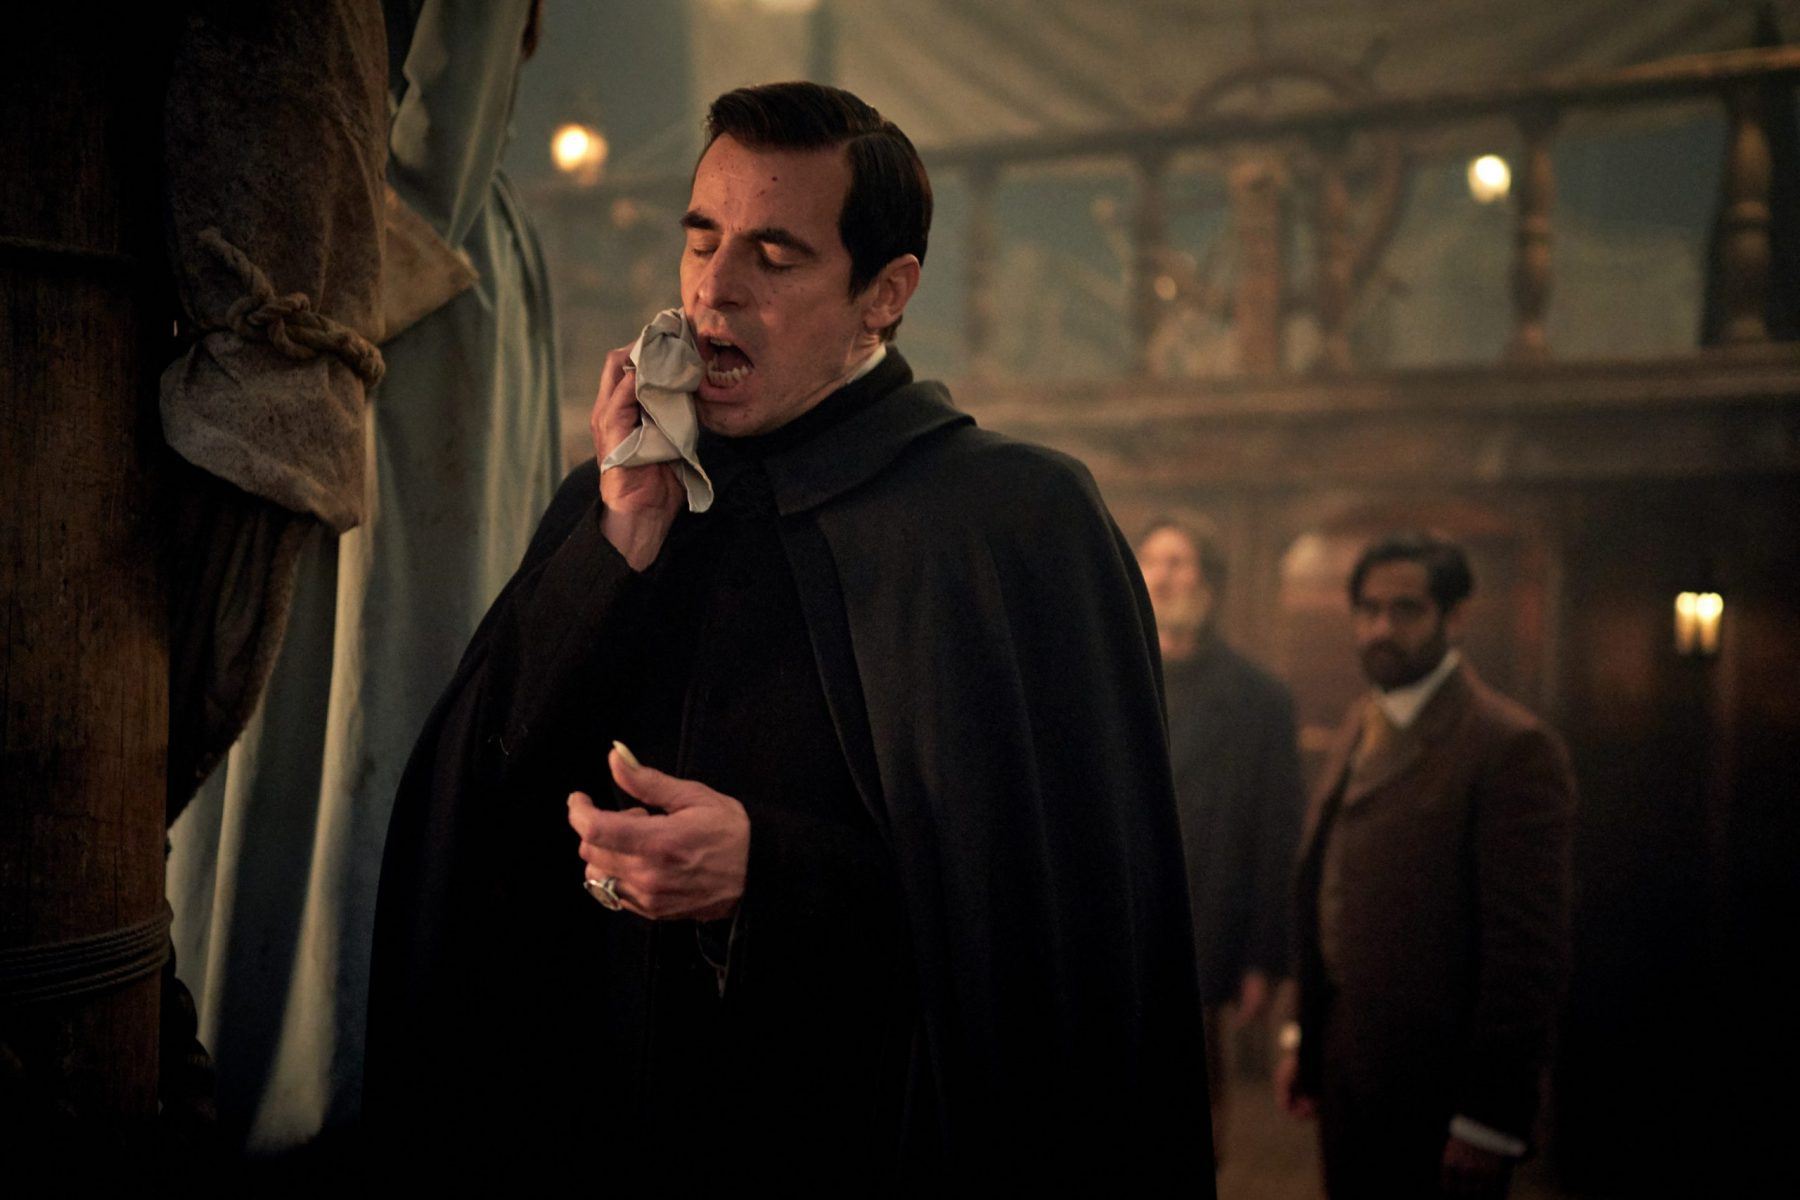 Claes Bang as Dracula in the BBC series Dracula